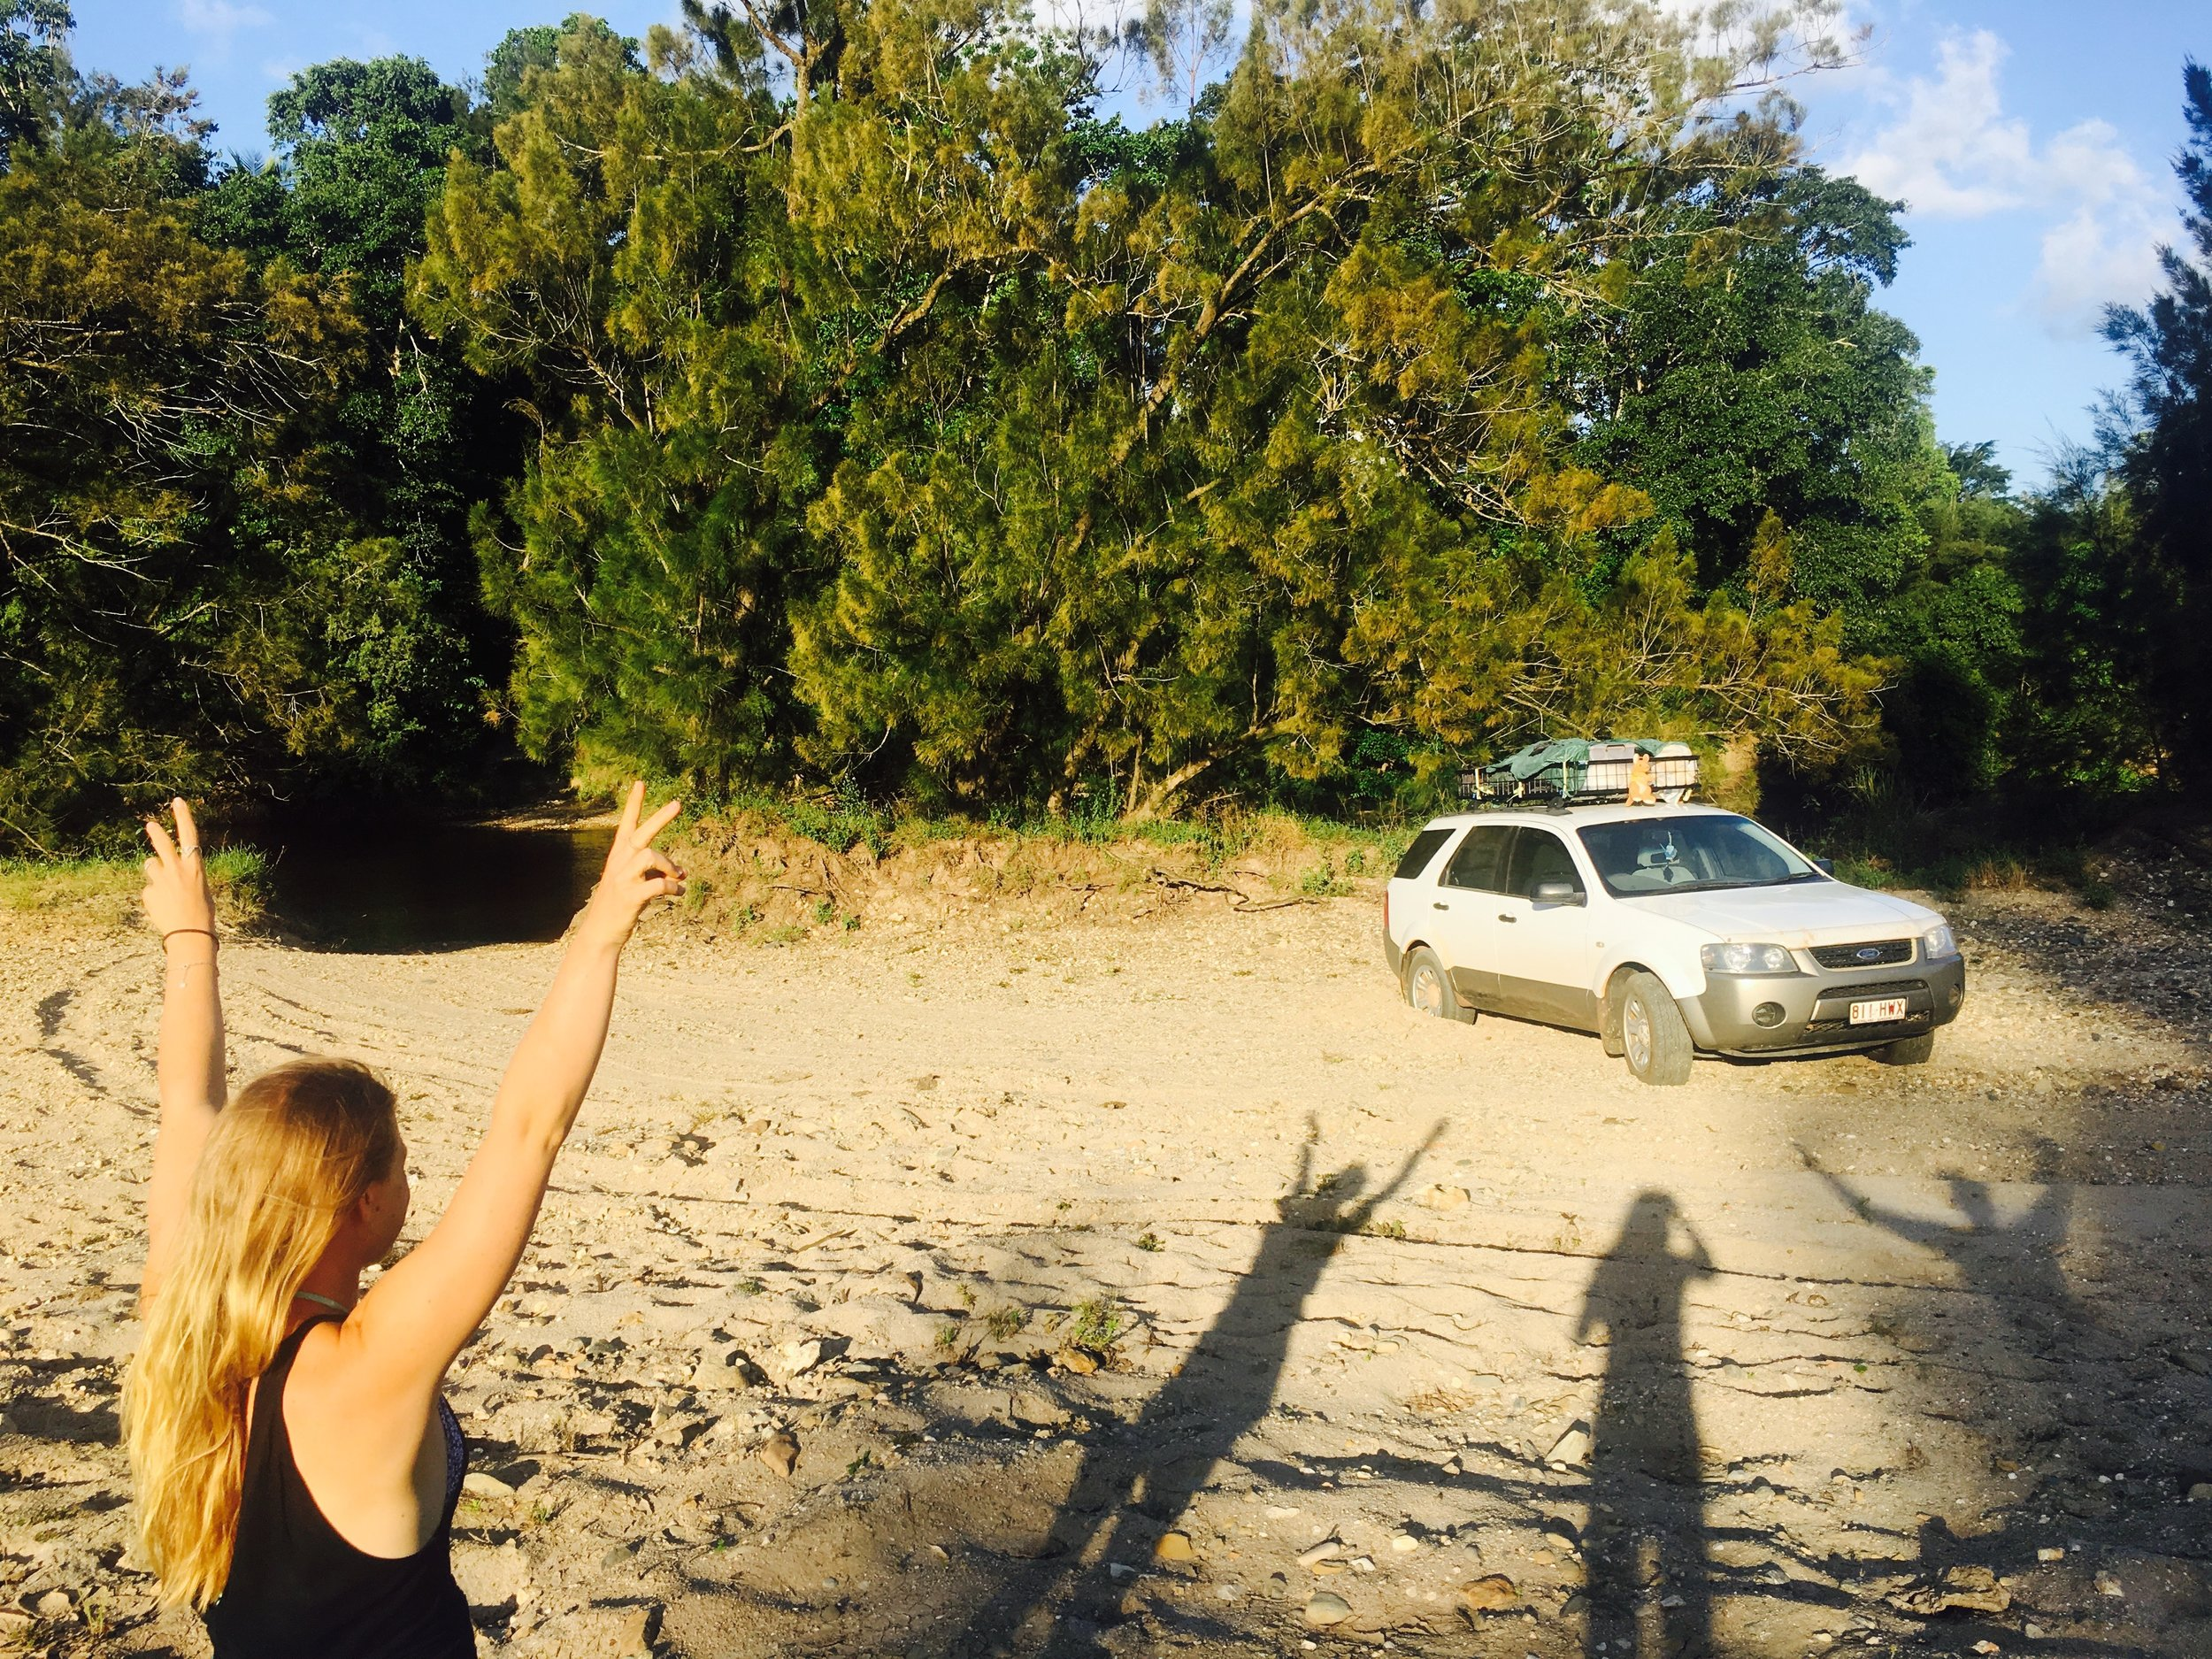 Stuck on the Daintree River, waiting for the Tractor to come pull us out